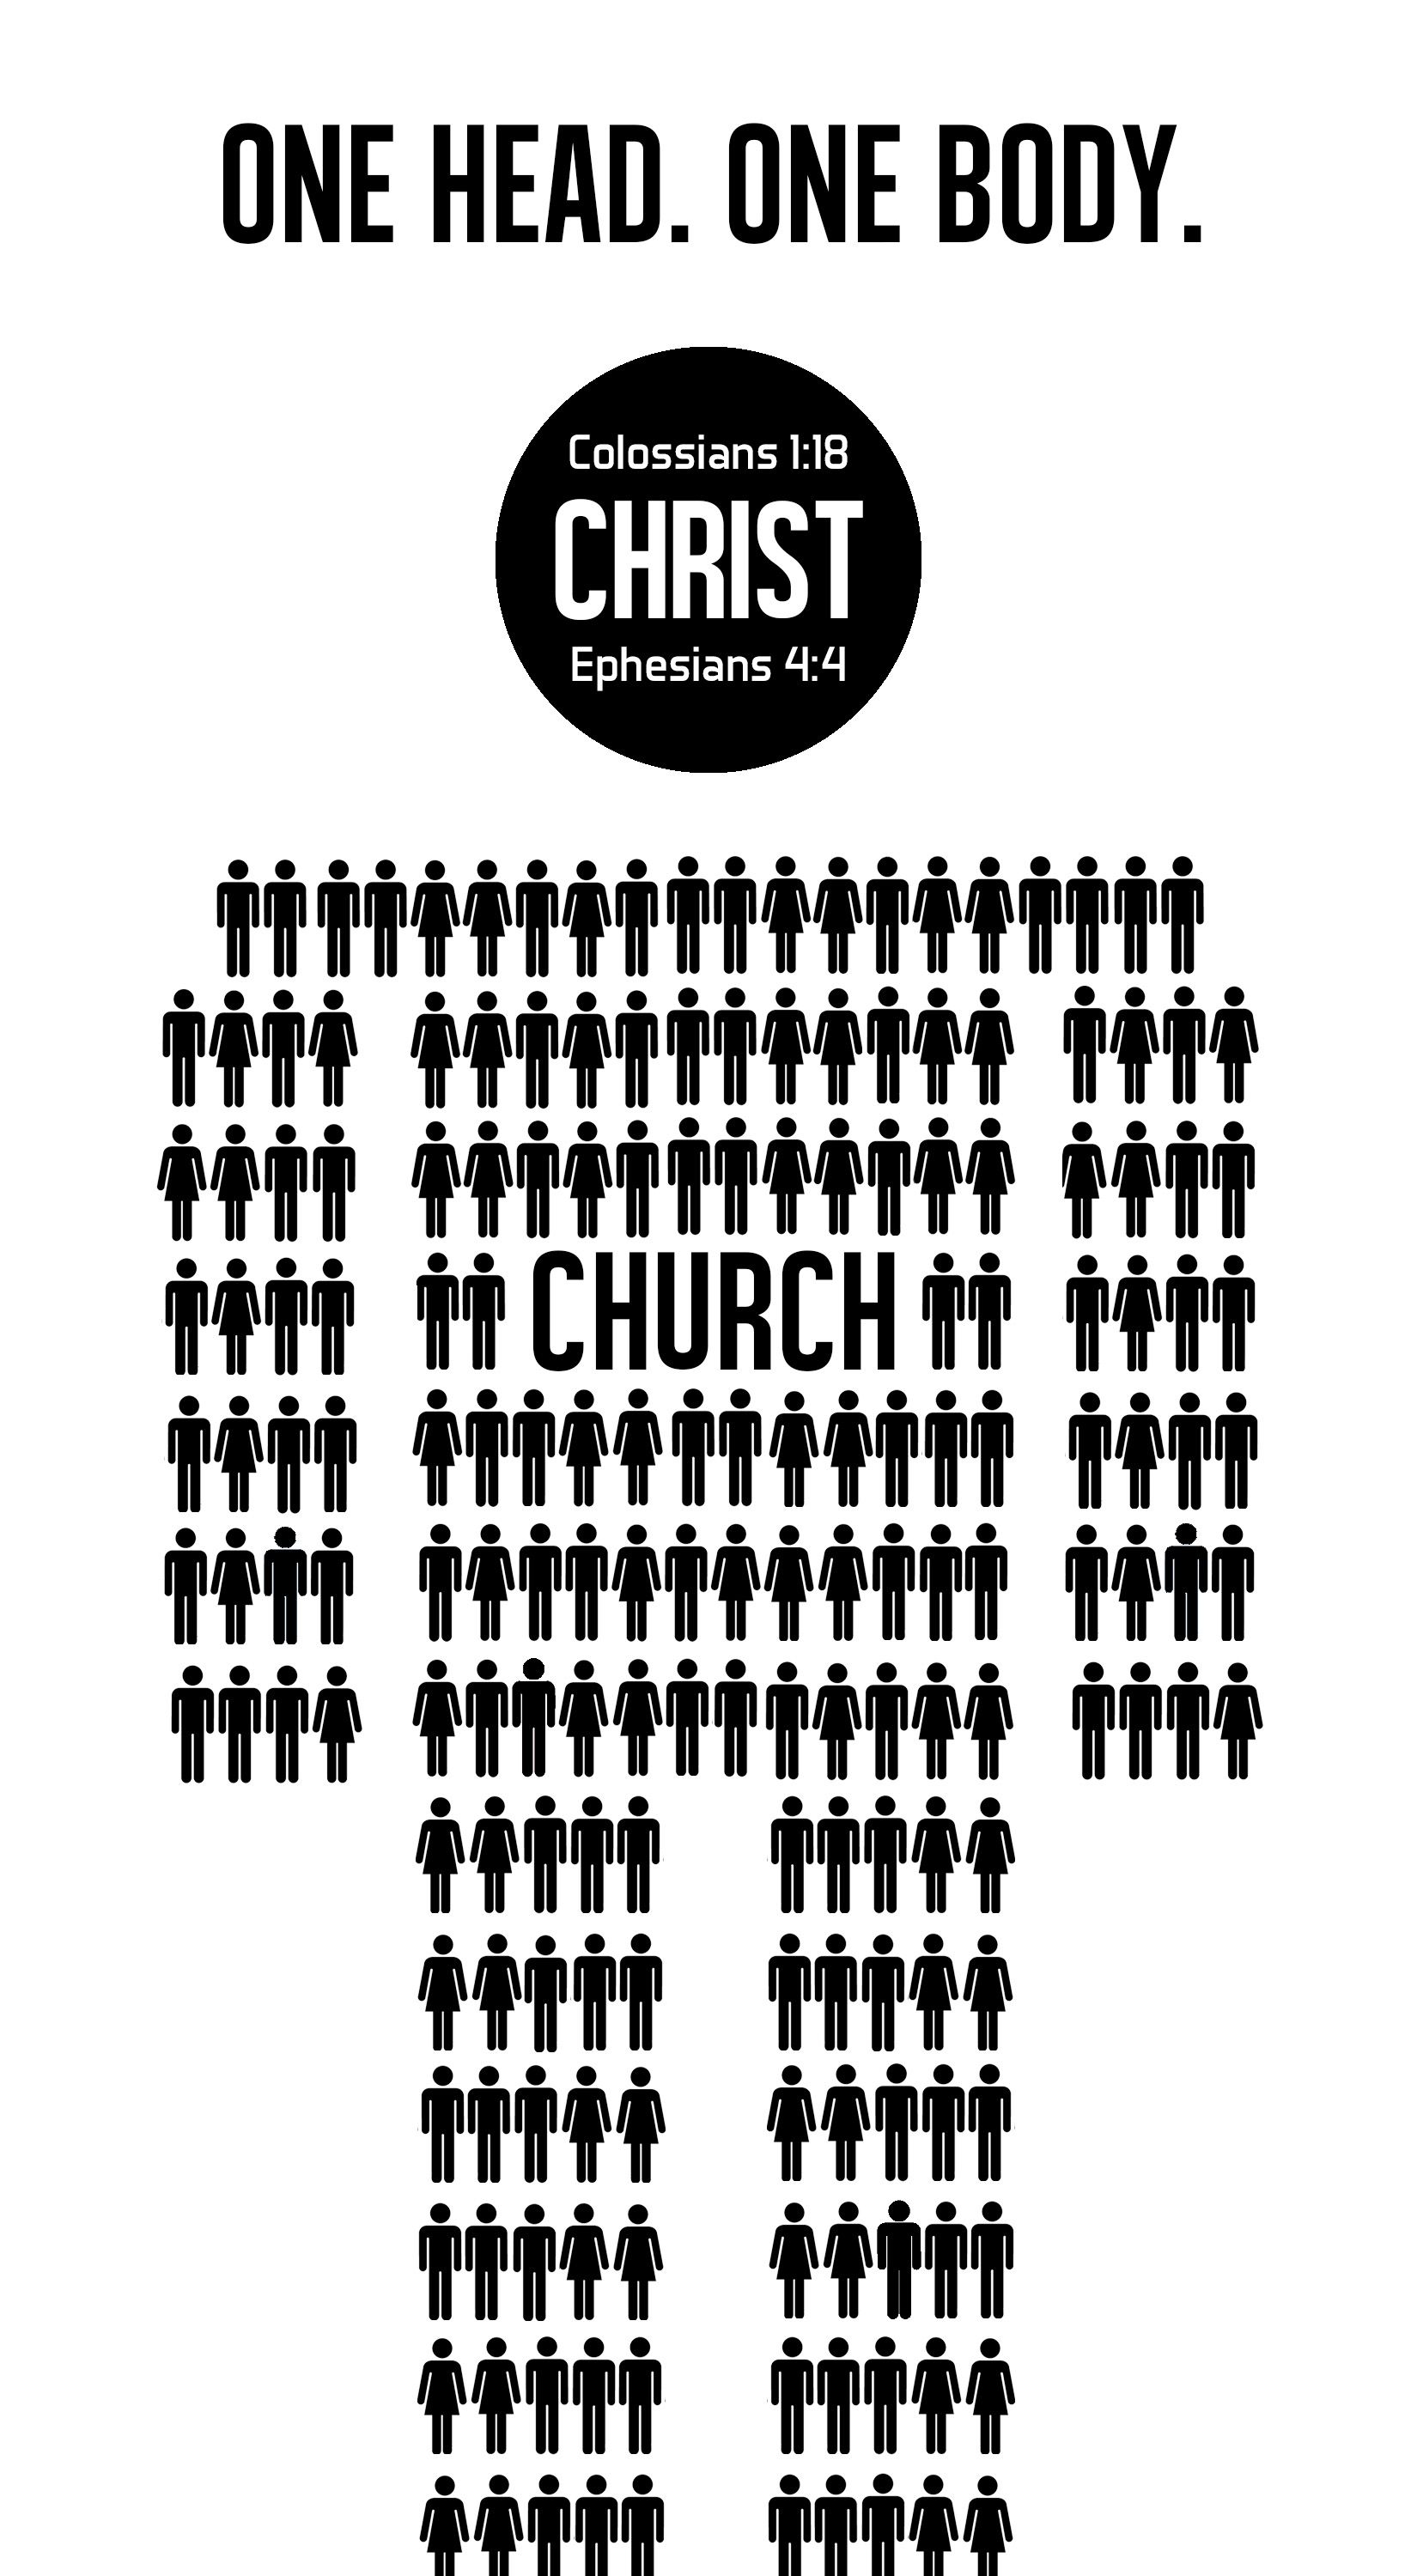 The relationship between Christ and his church, his only